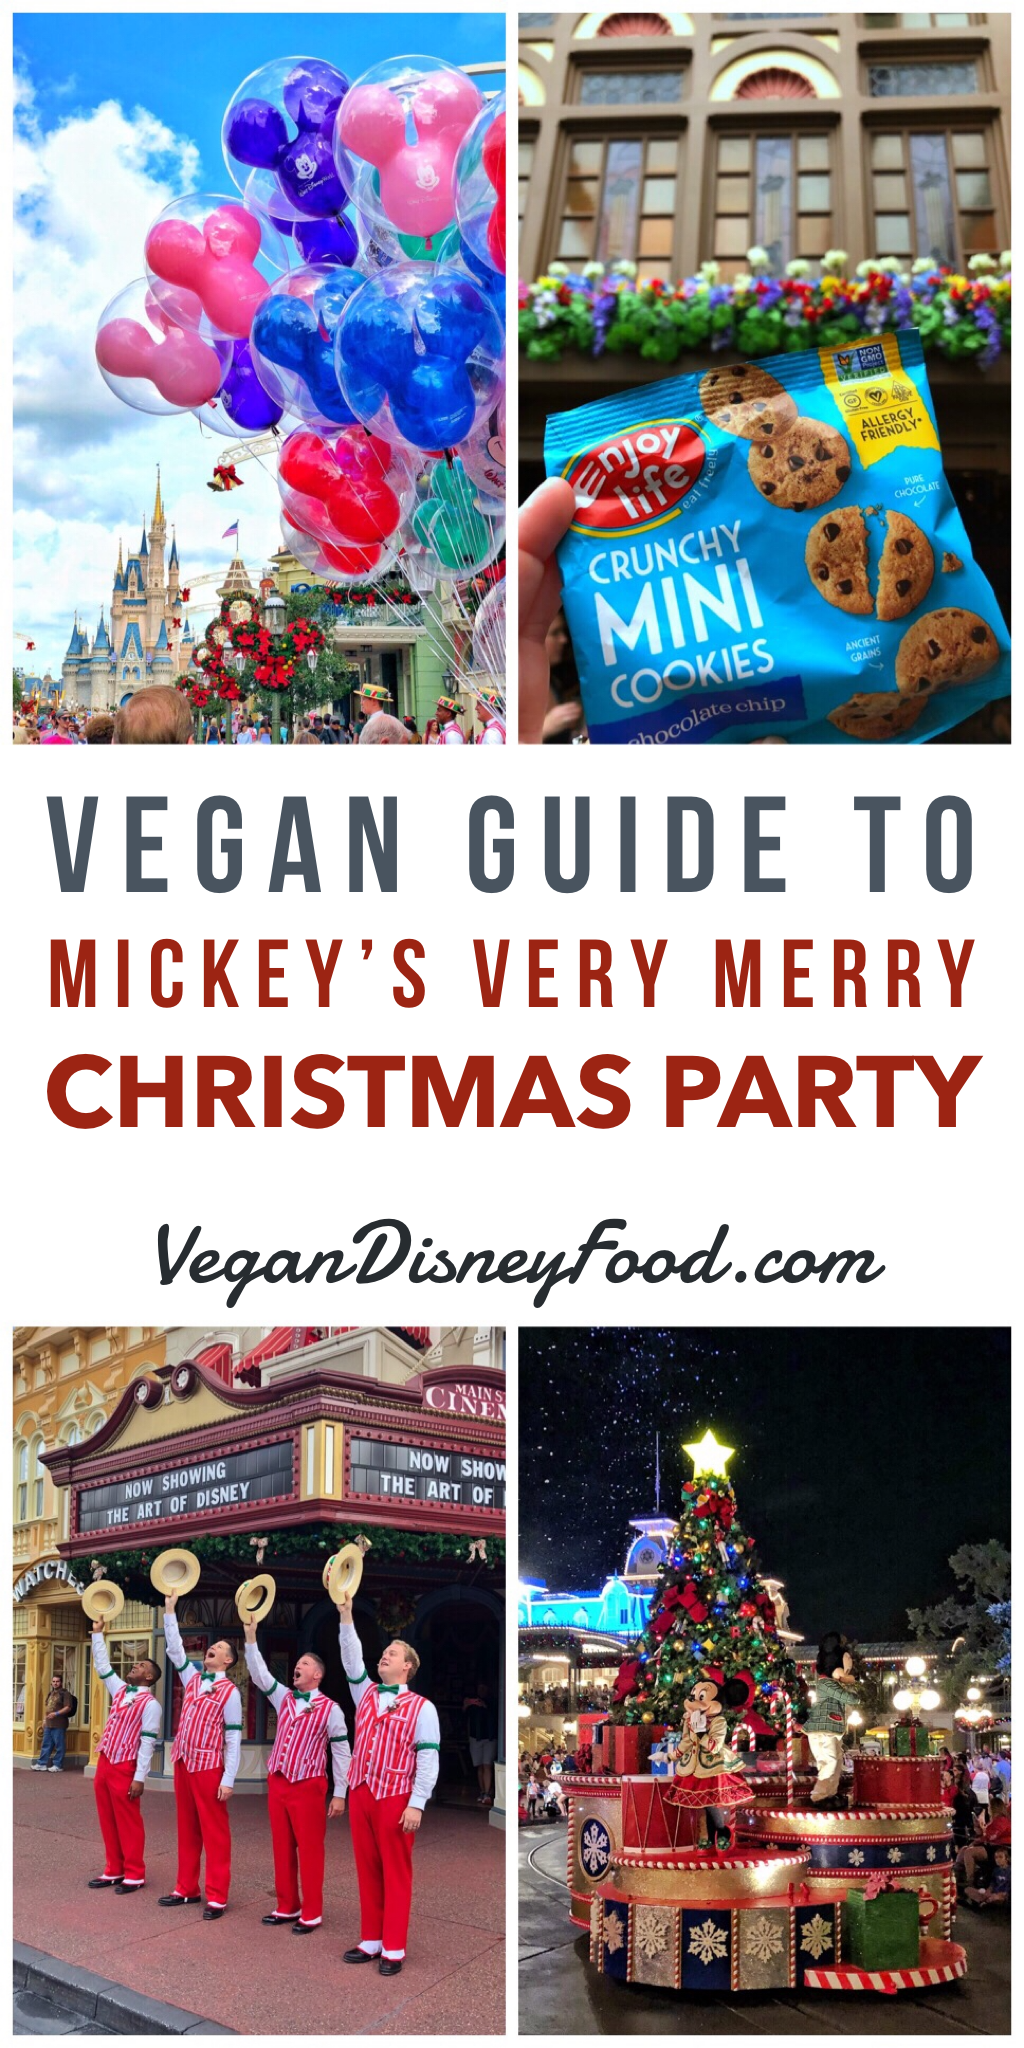 Vegan Food Guide to Mickey's Very Merry Christmas Party in the Magic Kingdom at Walt Disney World